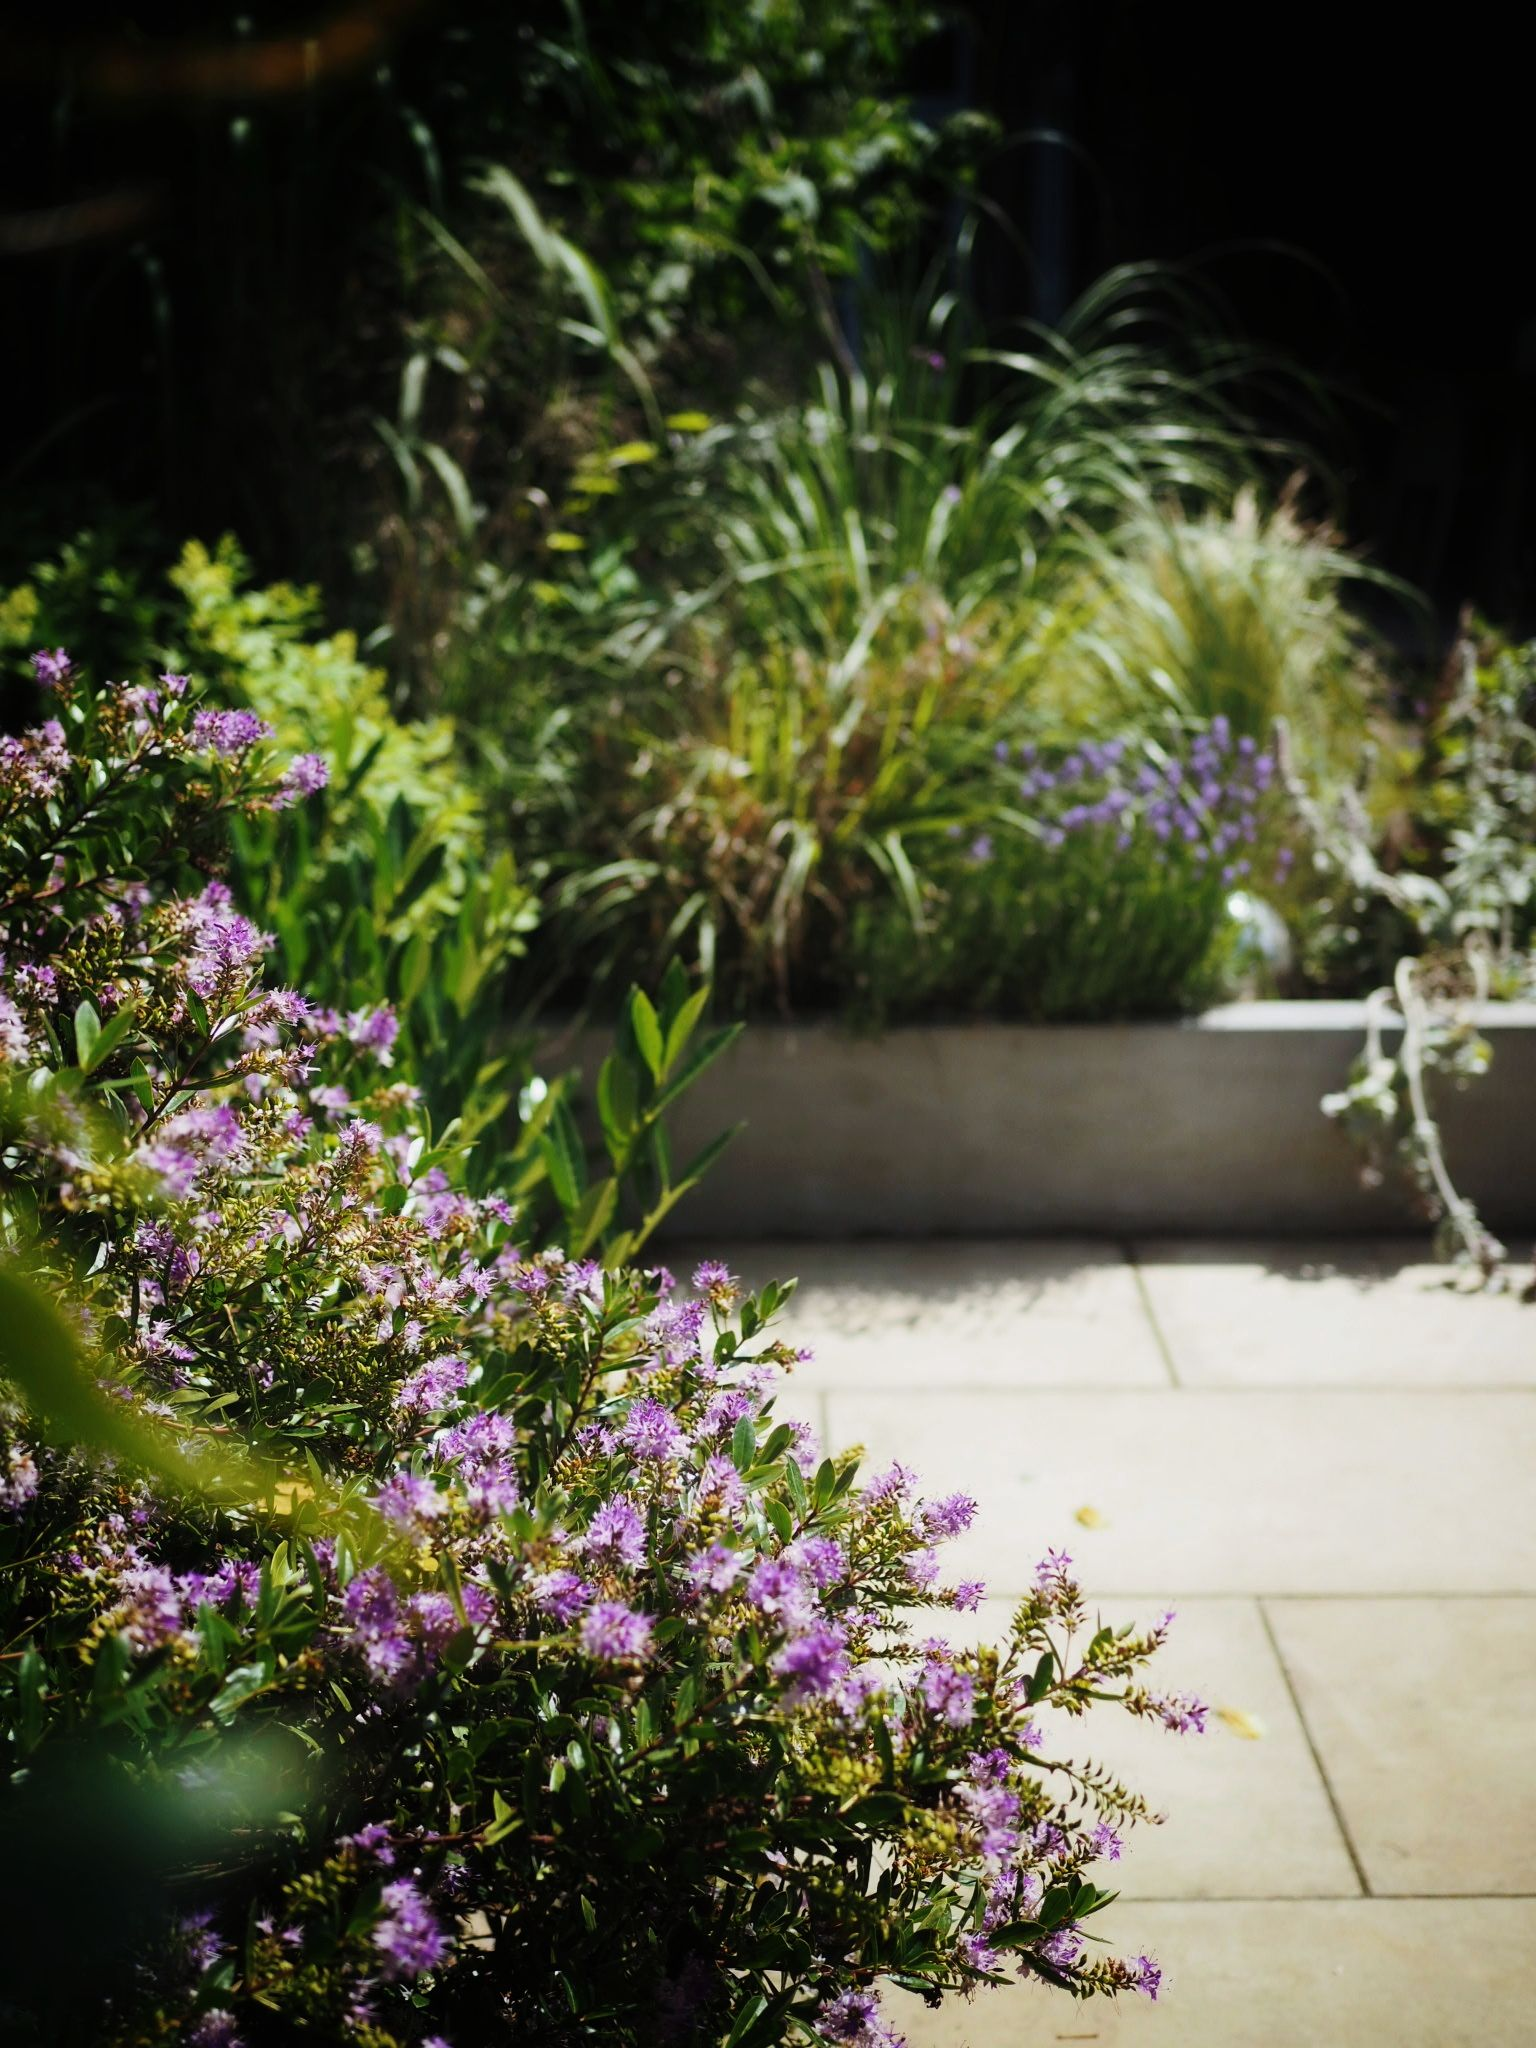 A corner of our old garden where I proved to be surprisingly green fingered